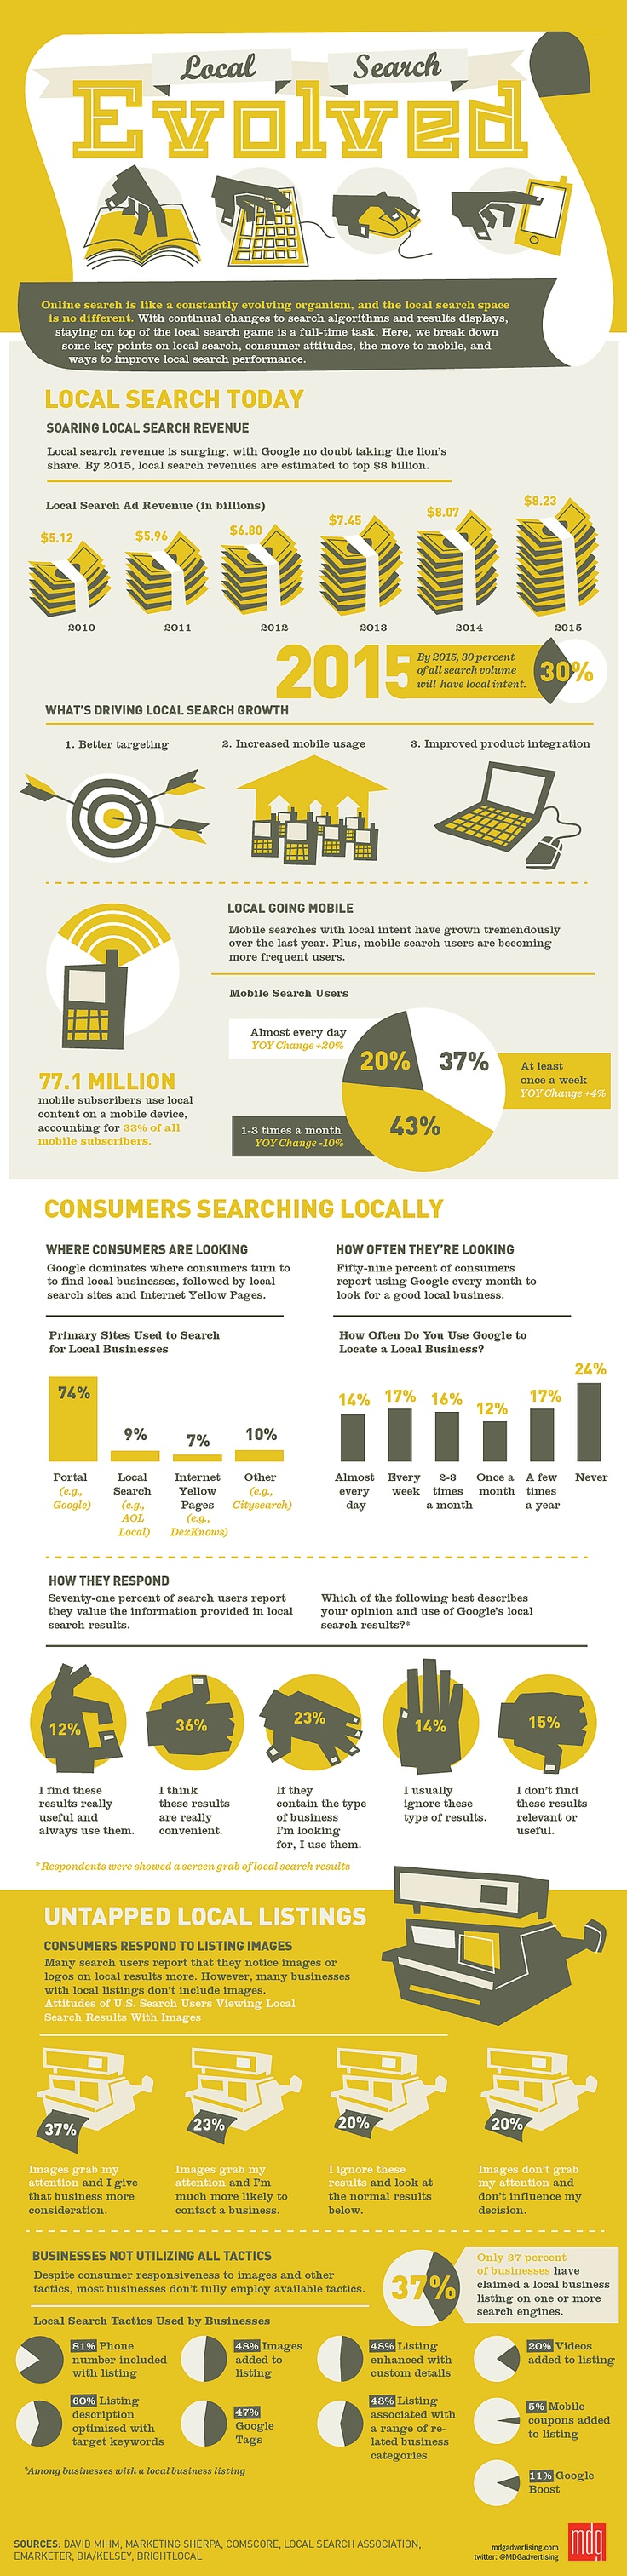 Local Search's Importance